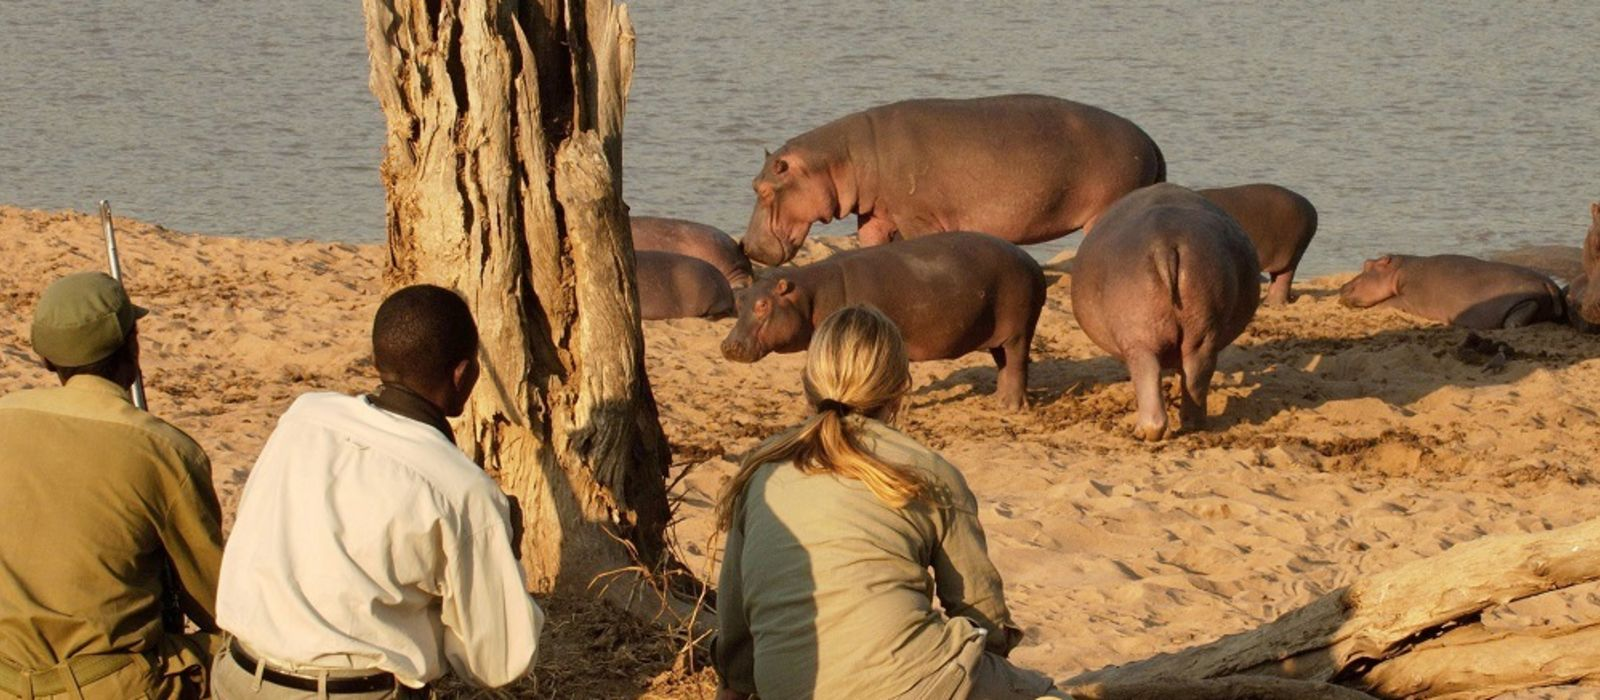 Zambia: Victoria Falls and Safari Highlights Tour Trip 5